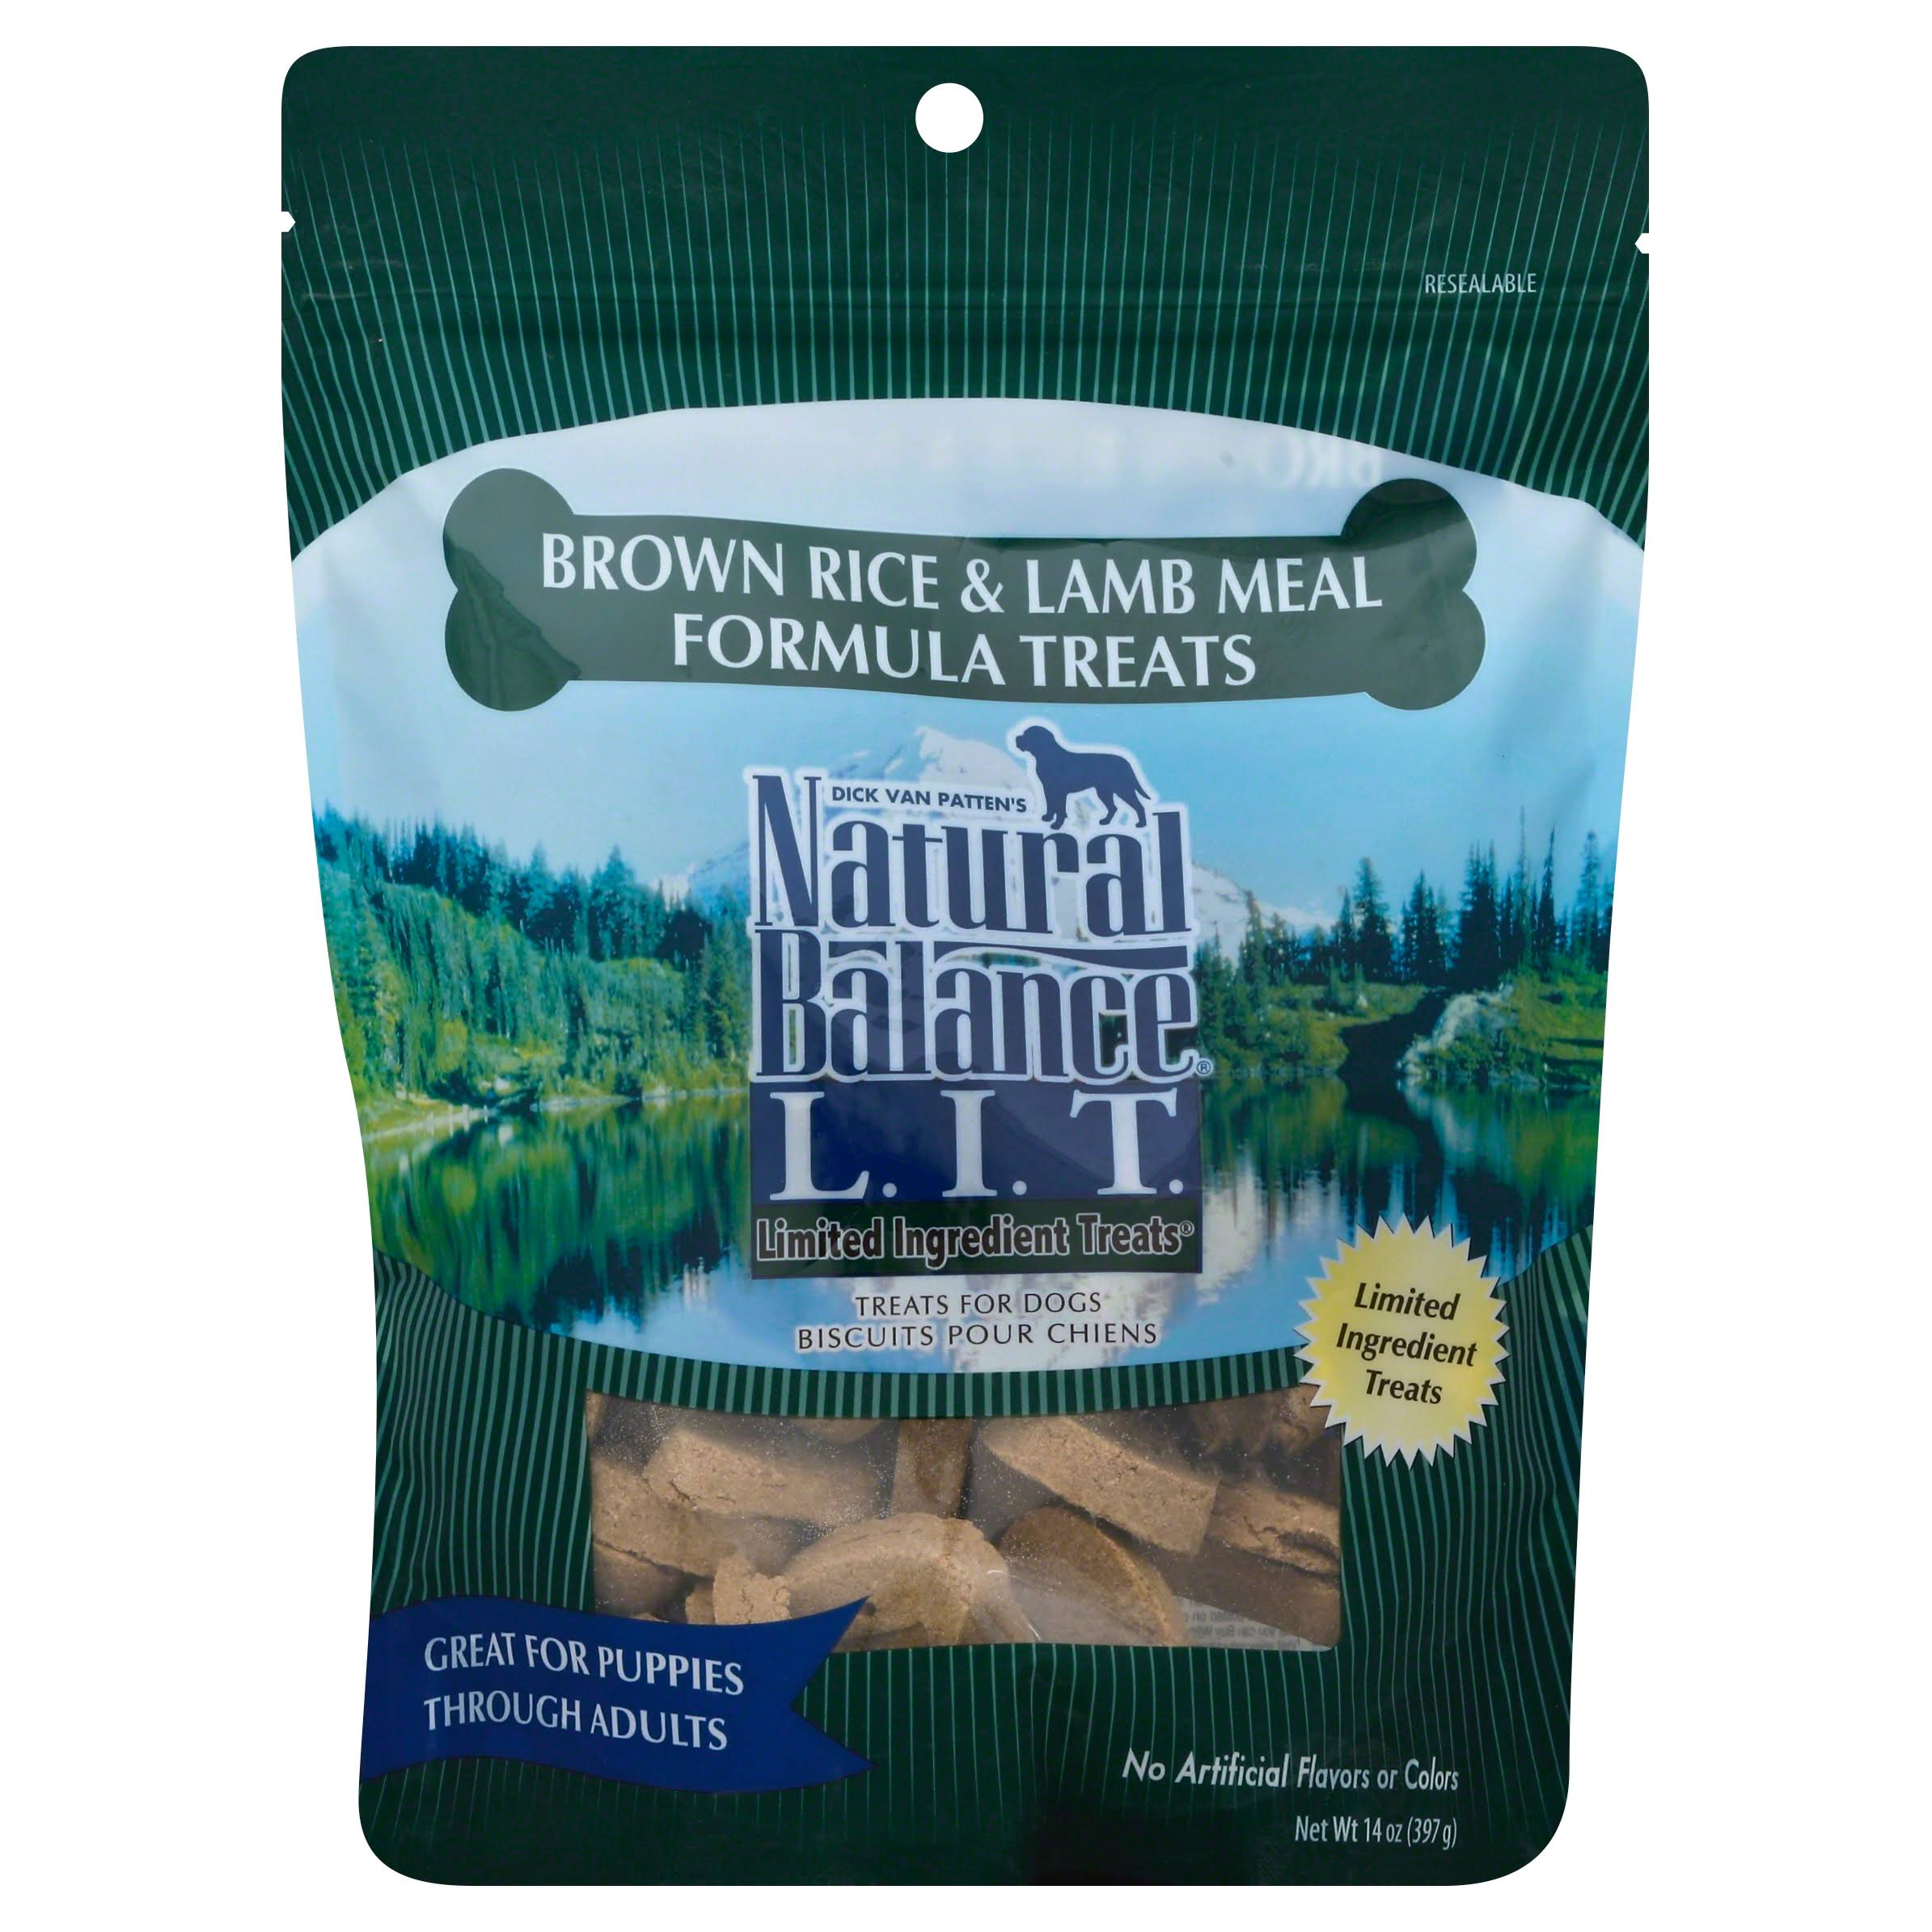 Natural Balance Limited Ingredient Dog Treats - Brown Rice and Lamb Meal Formula, Dry, 14oz